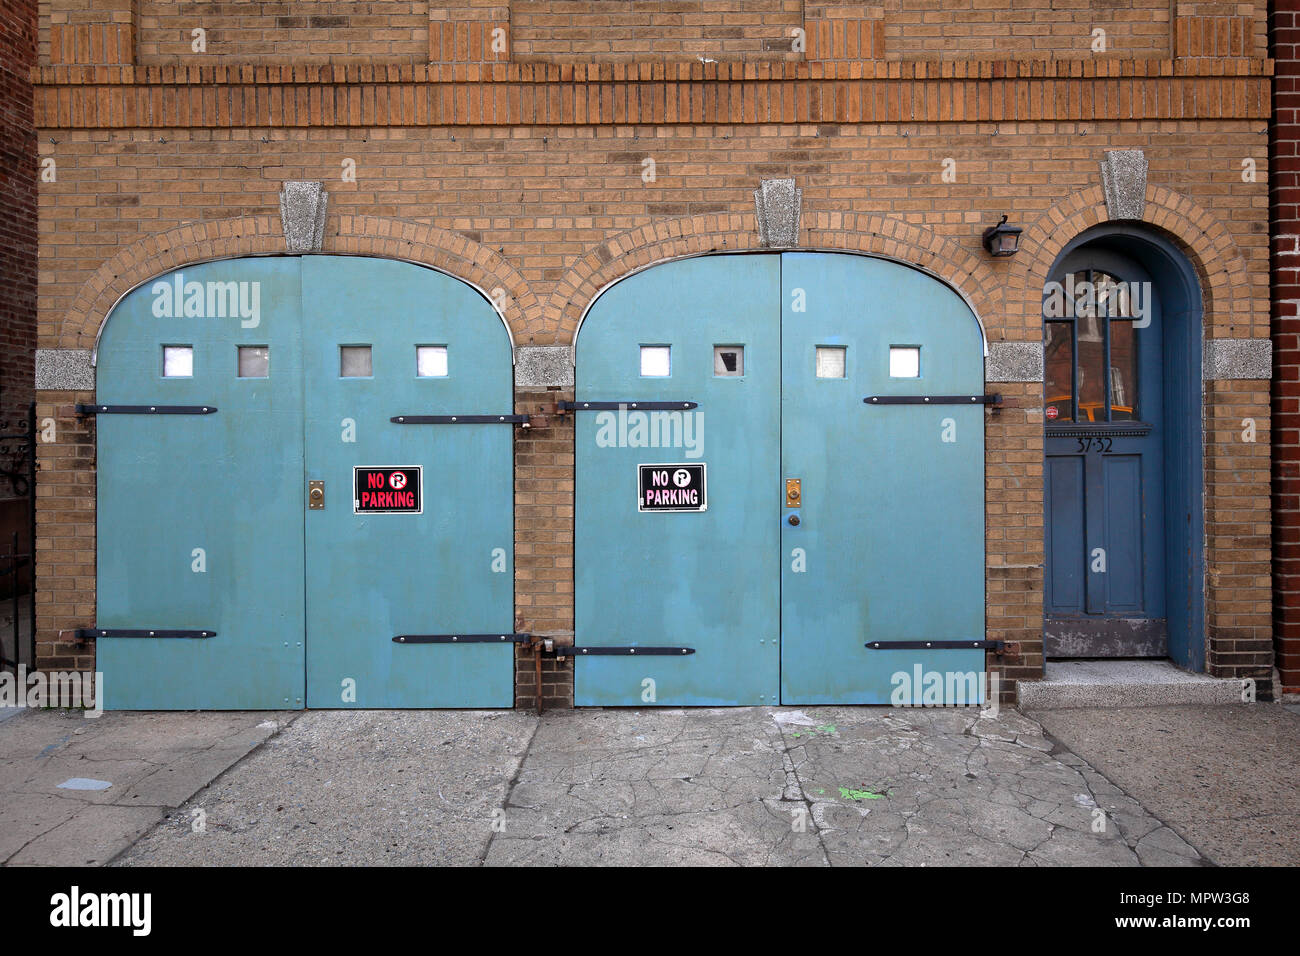 building with arched garage doors in Astoria, New York City - Stock Image